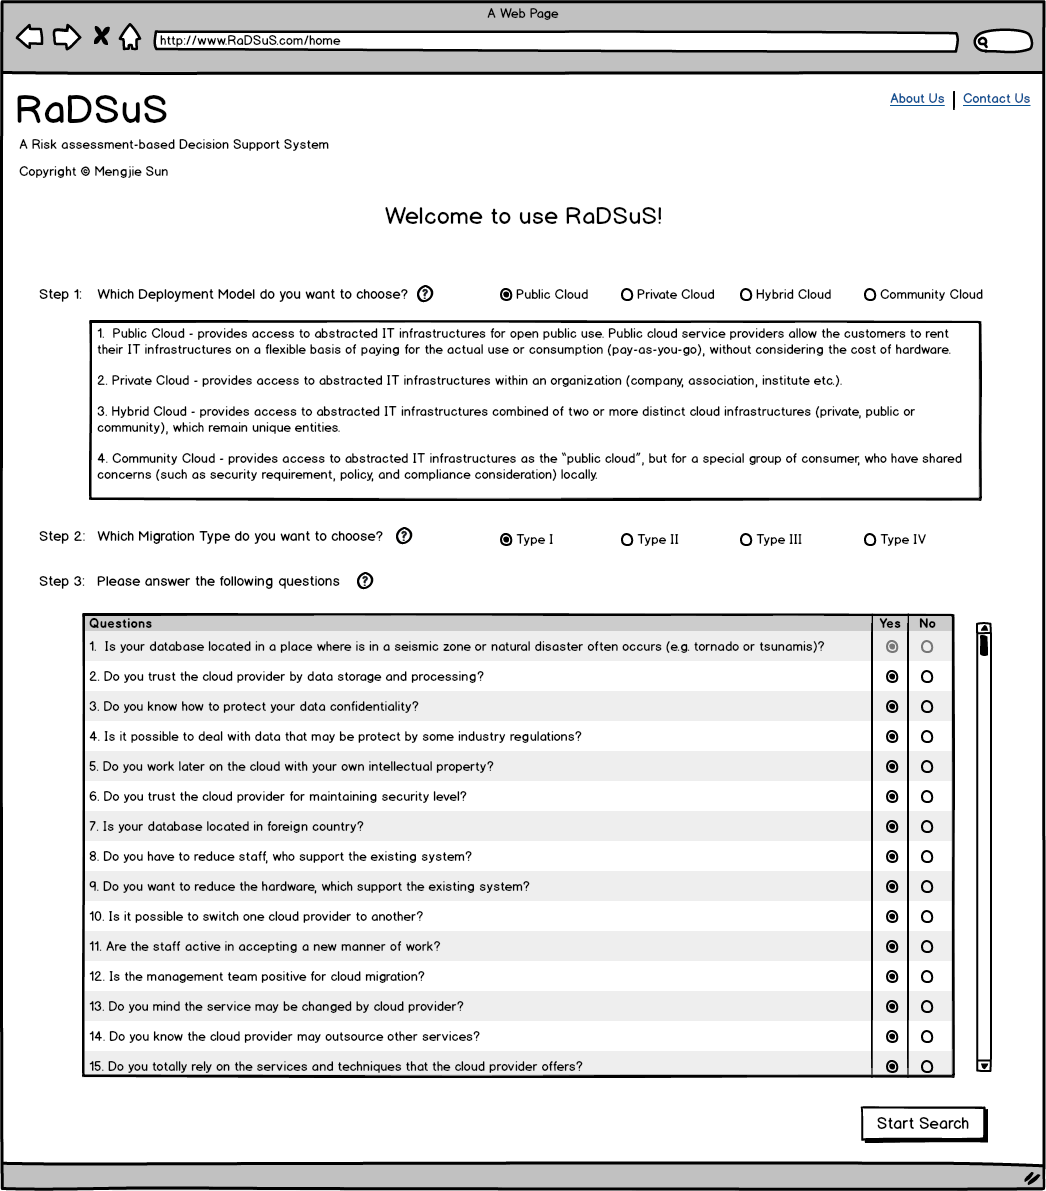 4 Design & Implementation As demonstrated in Figure 4.3, 3 steps are set up to collect users requirements. Step 1 is asked for choosing a deployment model and the default choice is public cloud.